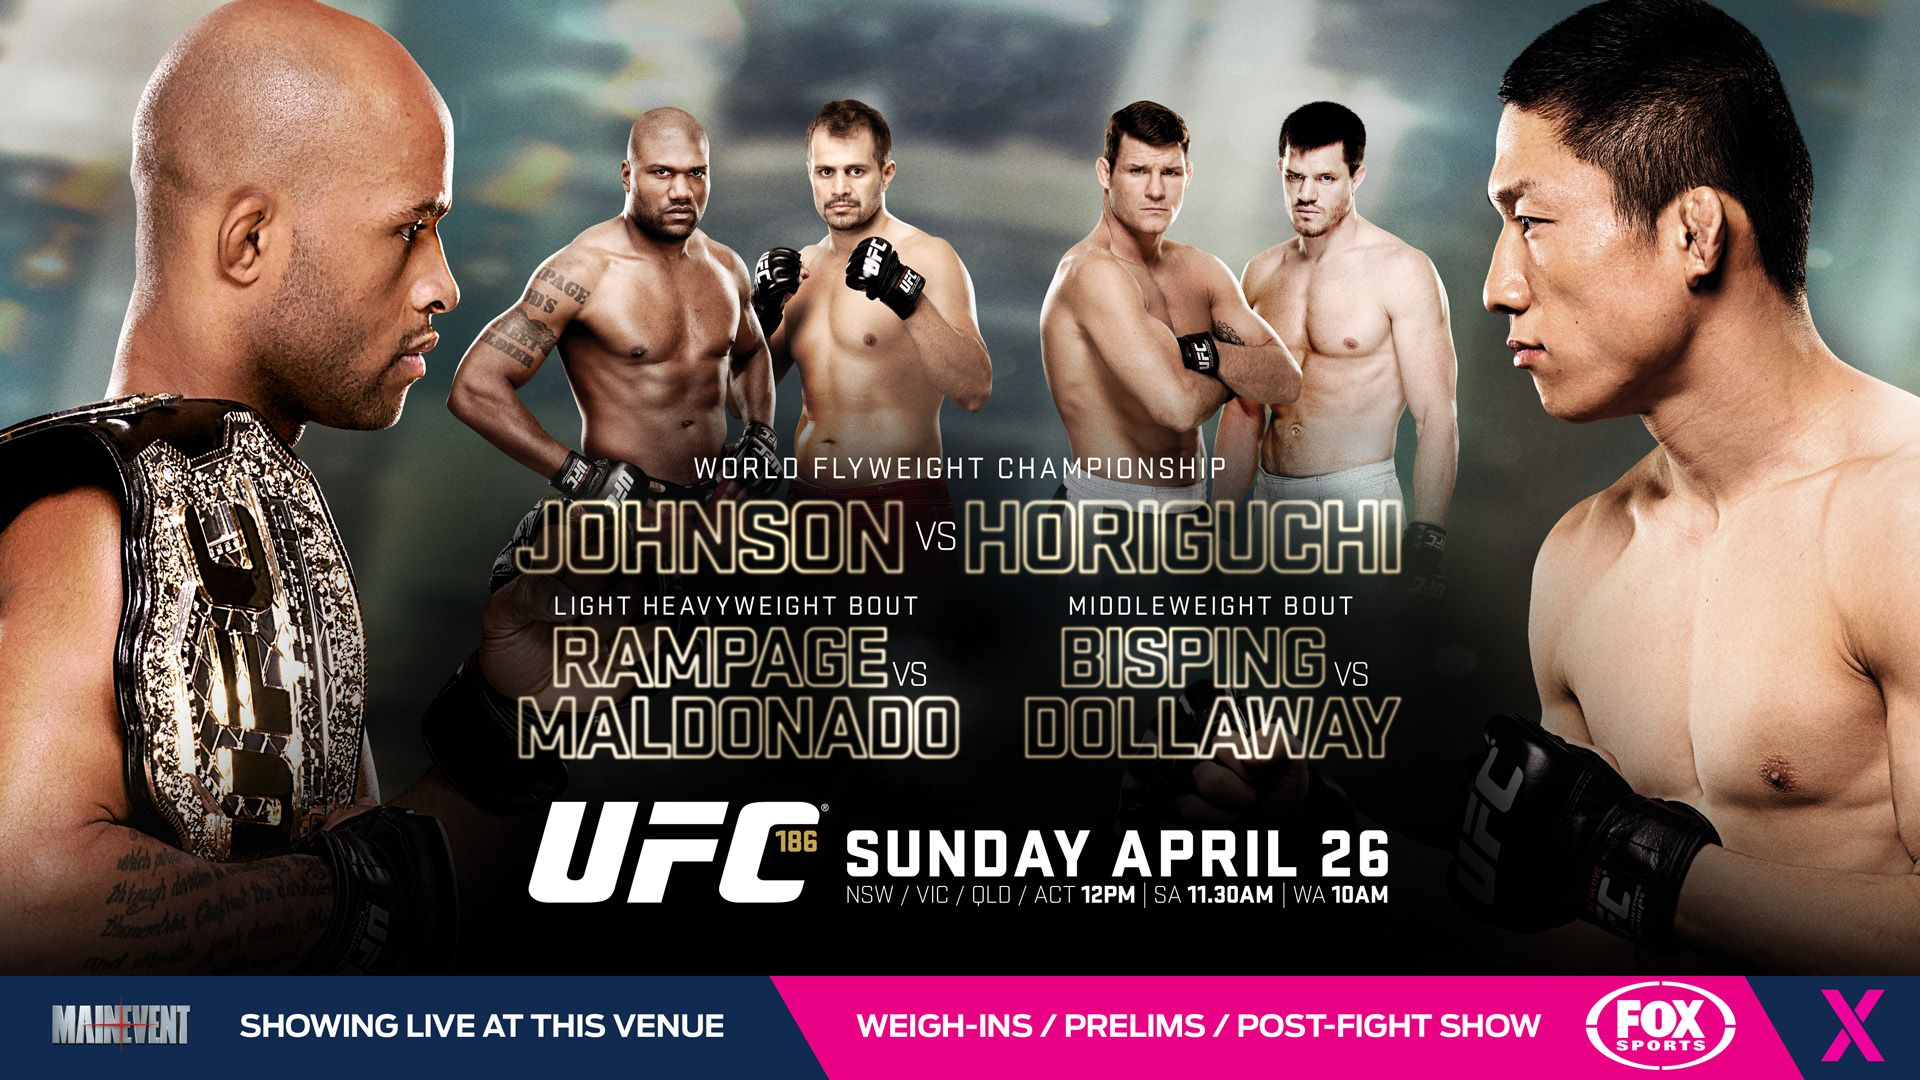 Wallpaper for ufc 186 mma wallpapers pinterest ufc 186 ufc wallpaper for ufc 186 voltagebd Image collections